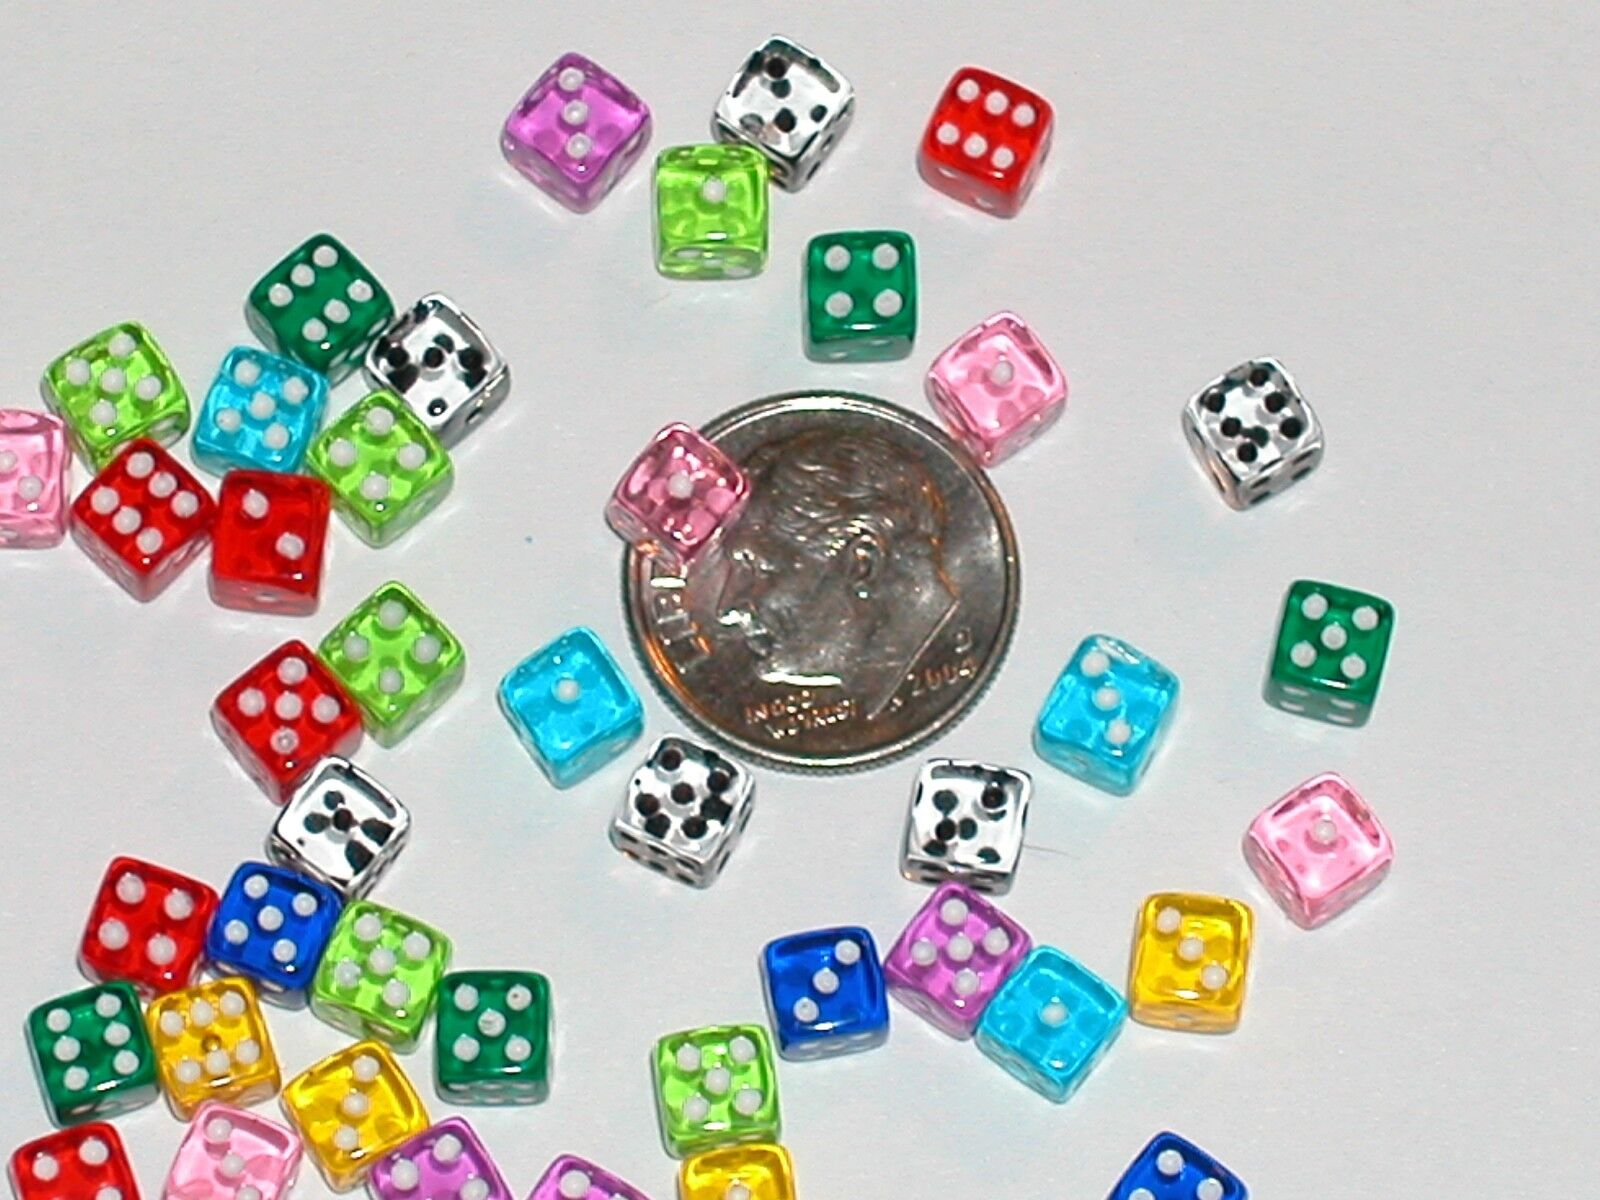 8pc Lot Tiny Miniature Dollhouse Dice Die Charm Miniatures Findings 5mm No Hole - $7.95